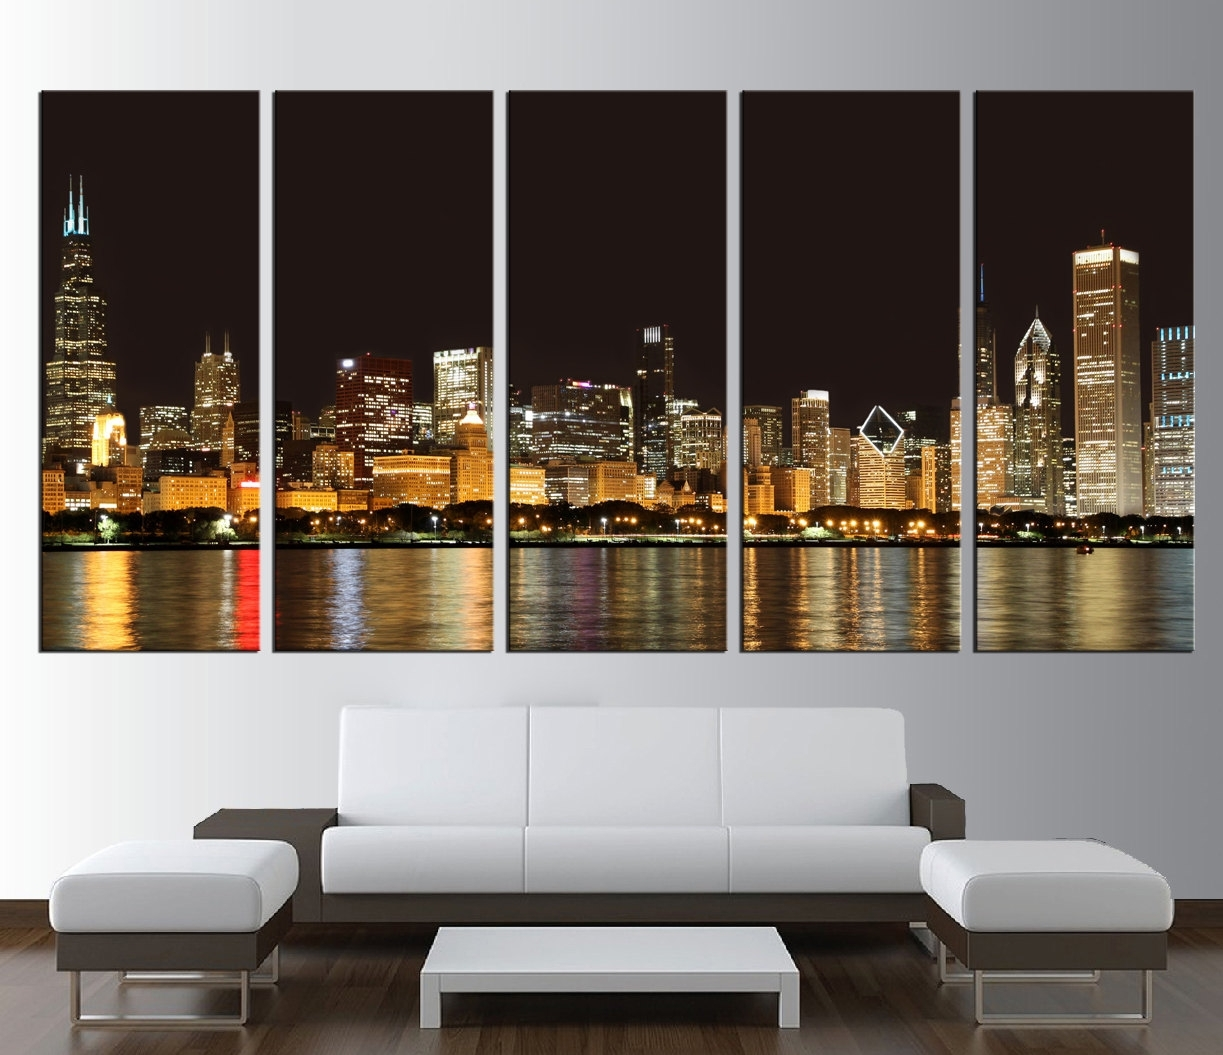 Peaceful Design Ideas Chicago Wall Art Modern Home Designs Large with regard to Extra Large Wall Art (Image 15 of 20)